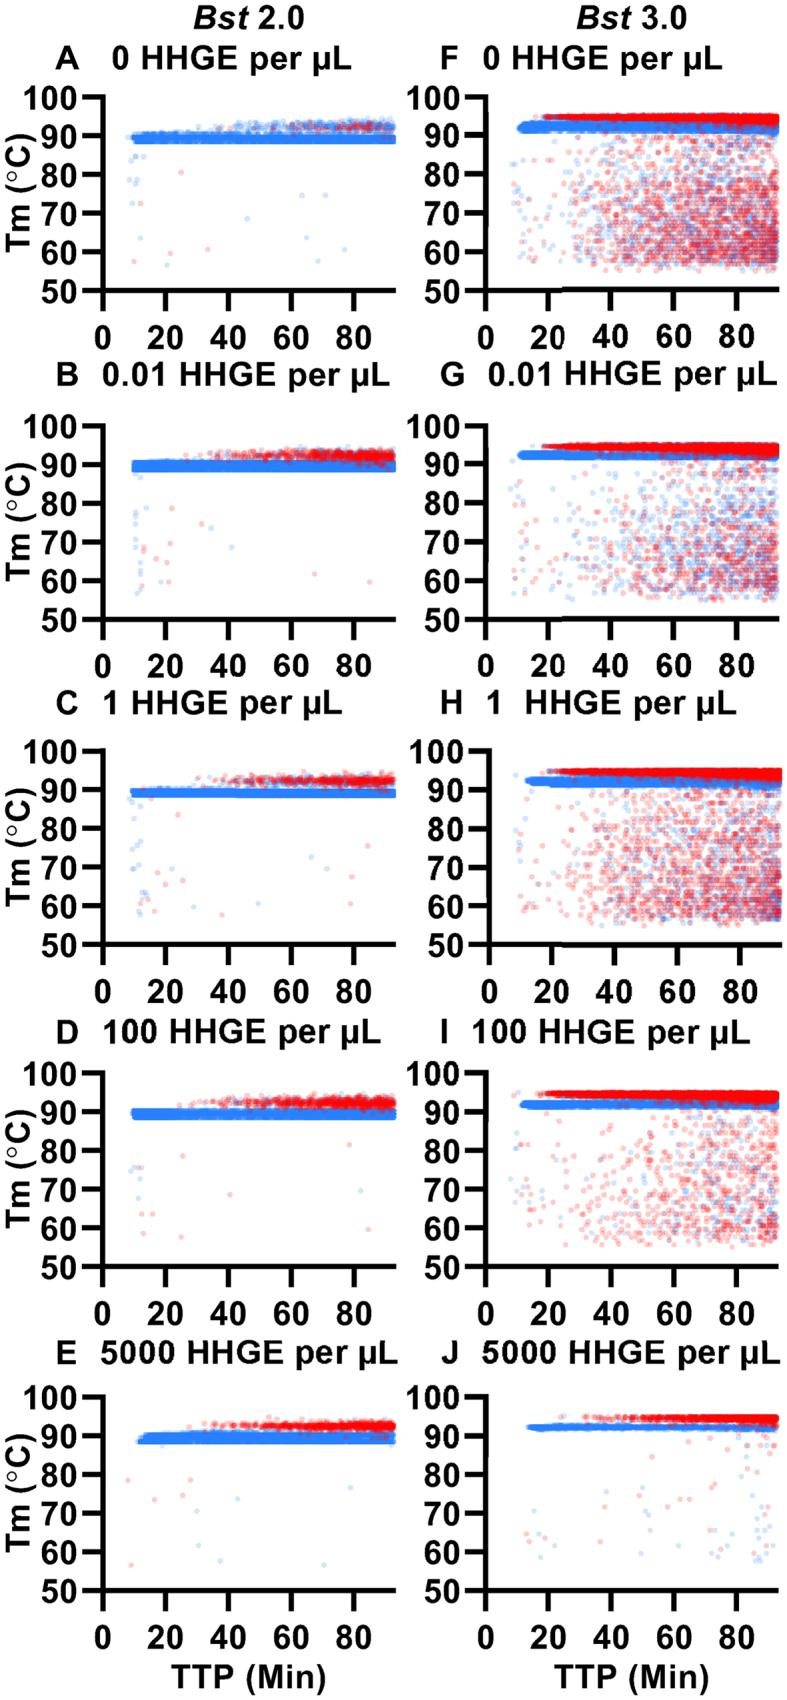 Impacts of host (human) genomic DNA in human haploid genome equivalents (HHGE) on specific and non-specific amplification. Plots of T m as a function TTP using Bst 2.0 at ( A ) 0 HHGE per μl; ( B ) 0.01 HHGE per μL, ( C ) 1 HHGE per μl, ( D ) 100 HHGE per μl and ( E ) 5000 HHGE per μl; and using Bst 3.0 at ( F ) 0 HHGE per μl, ( G ) 0.01 HHGE per μl, ( H ) 1 HHGE per μl, ( I ) 100 HHGE per μl ( J ) 5000 HHGE per μl in the presence of template (blue) and NTC (red). N = 3 for all conditions, except Bst 3.0 at 0 and 100 HHGE per μl in the presence of template, where N = 6.